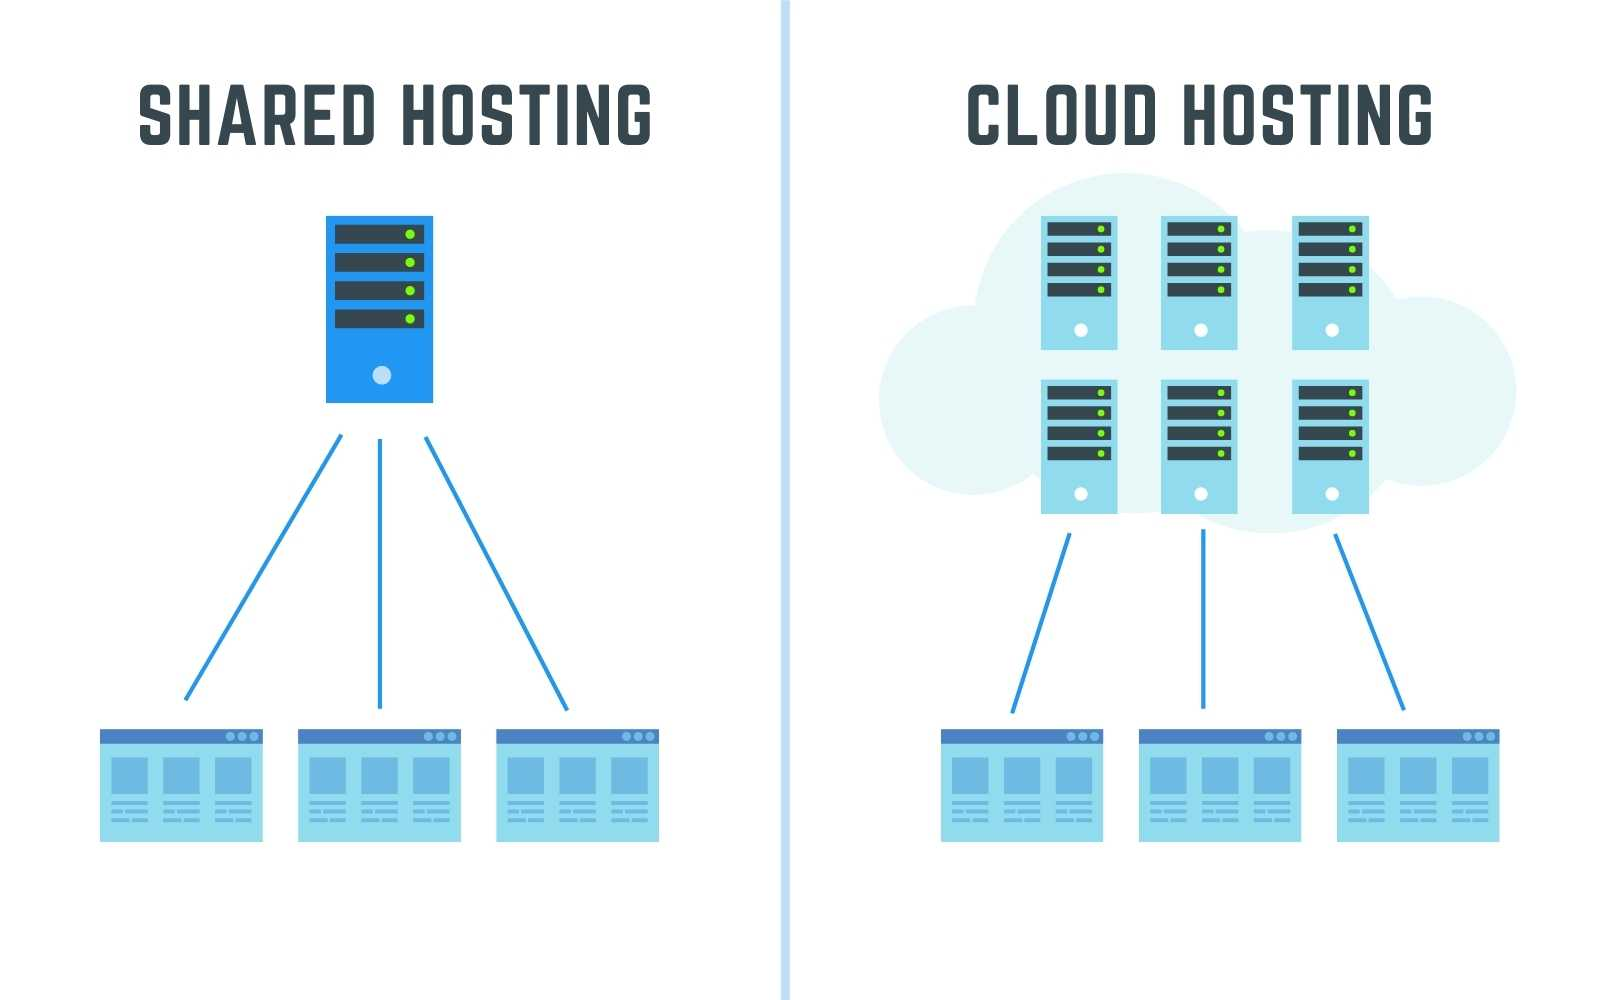 shared vs cloud hosting